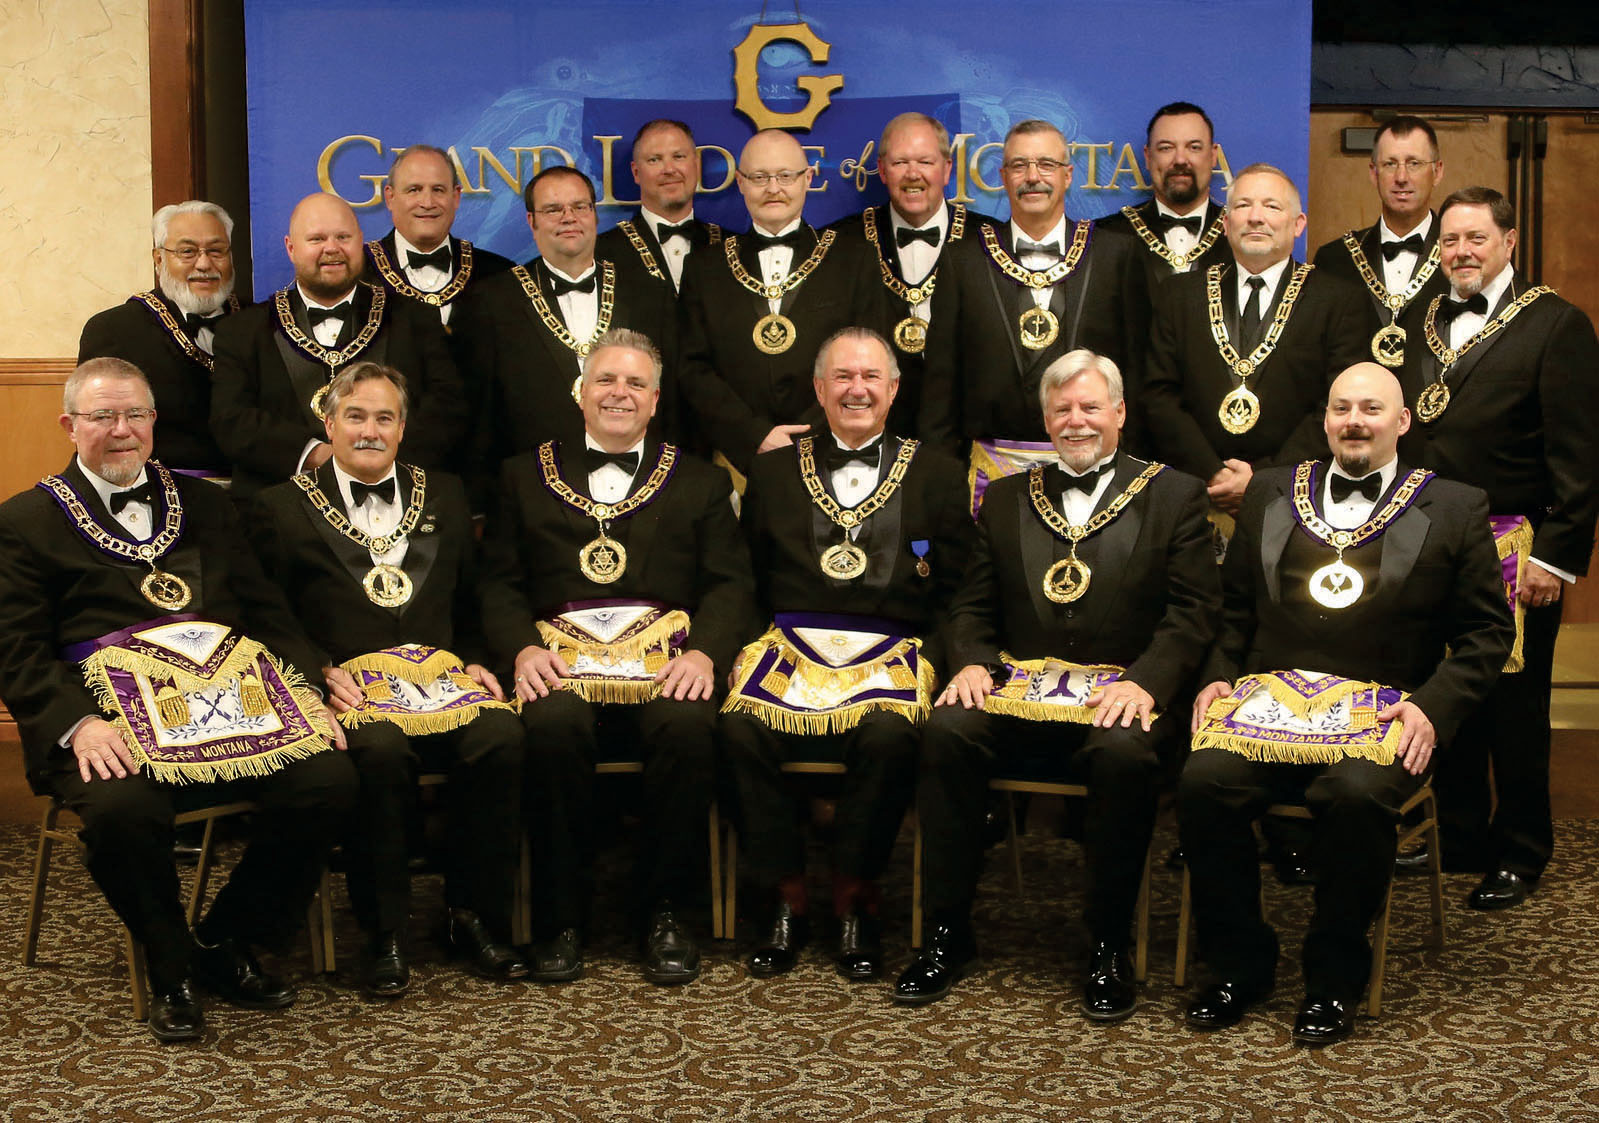 Grand Lodge Officers